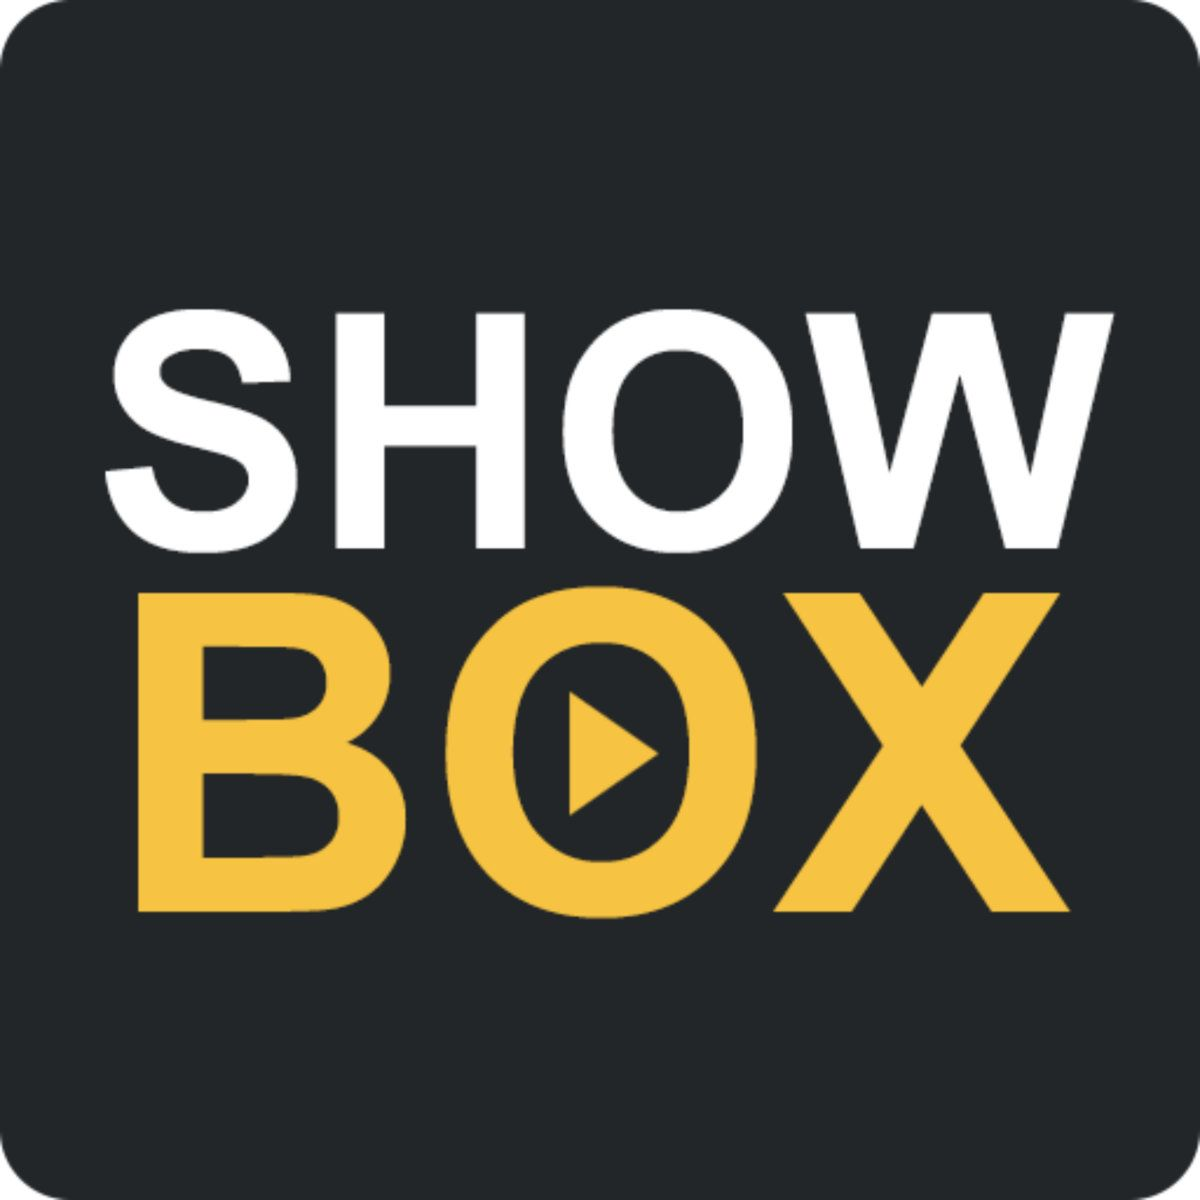 How to Install Showbox On Android, Mac, Windows & Iphone